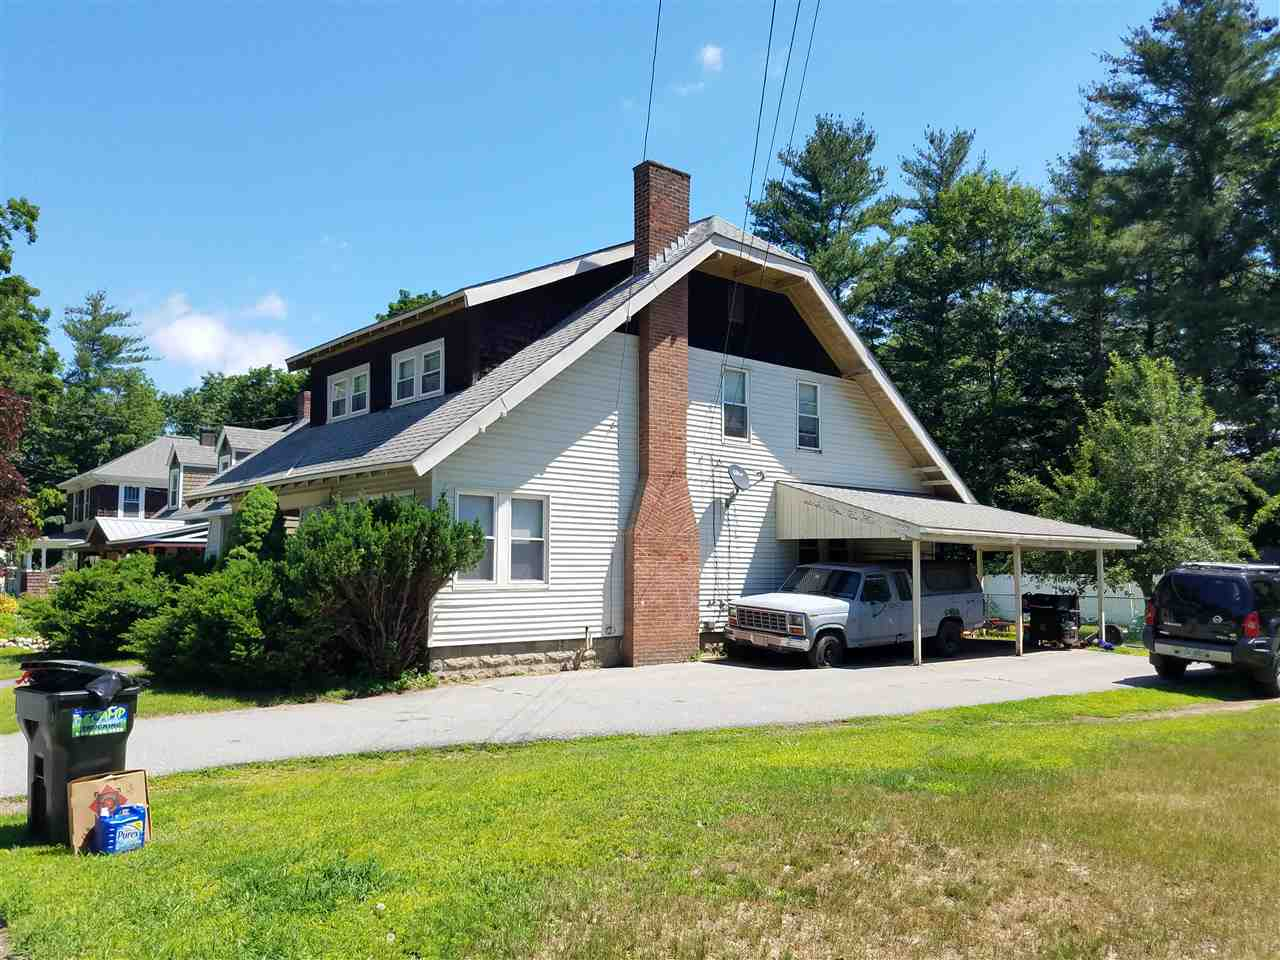 CLAREMONT NH Multi Family for sale $$142,500 | $74 per sq.ft.